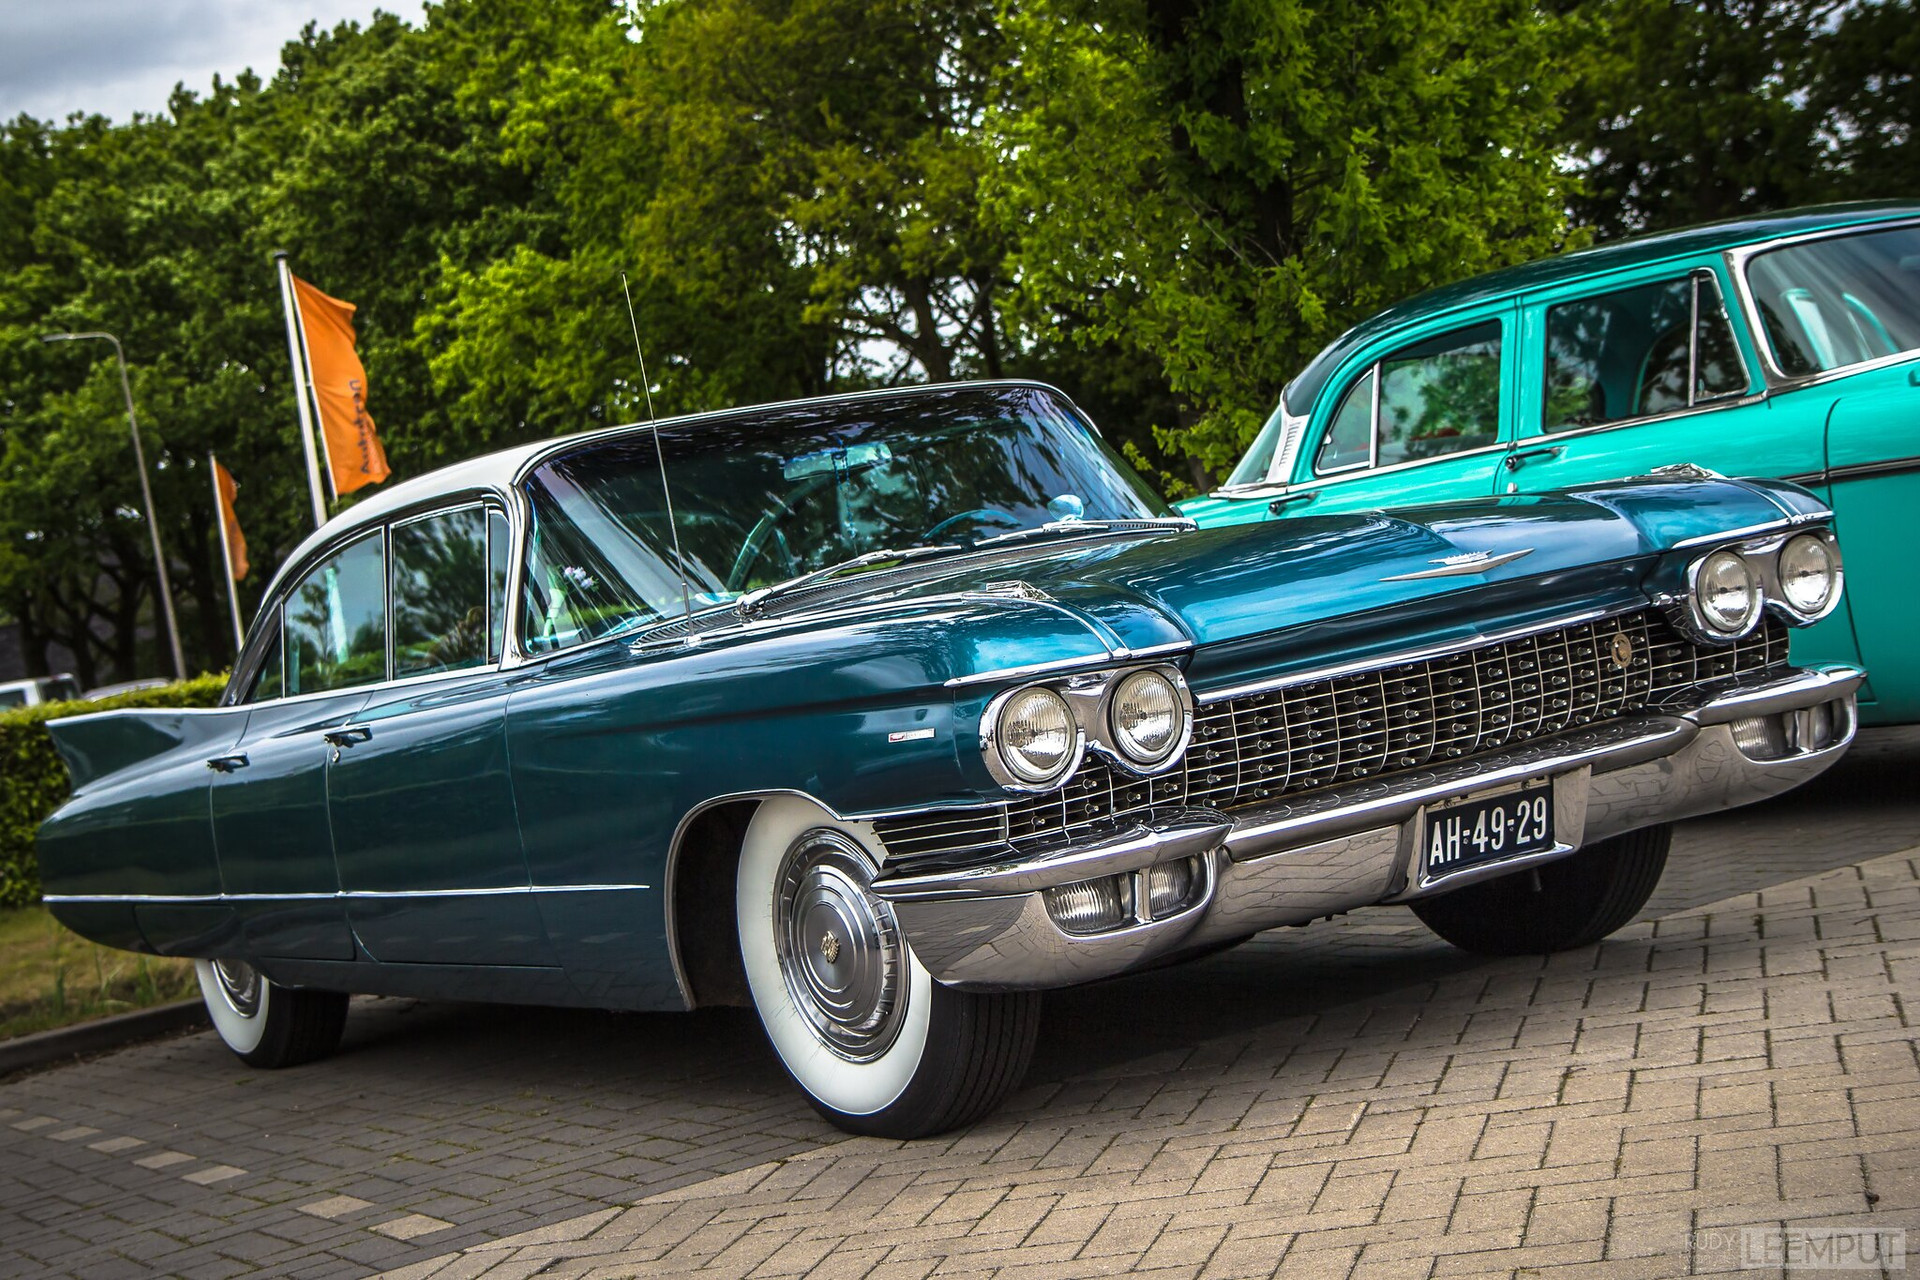 1960 | AH-49-29 | Cadillac Sixty Two Sedan